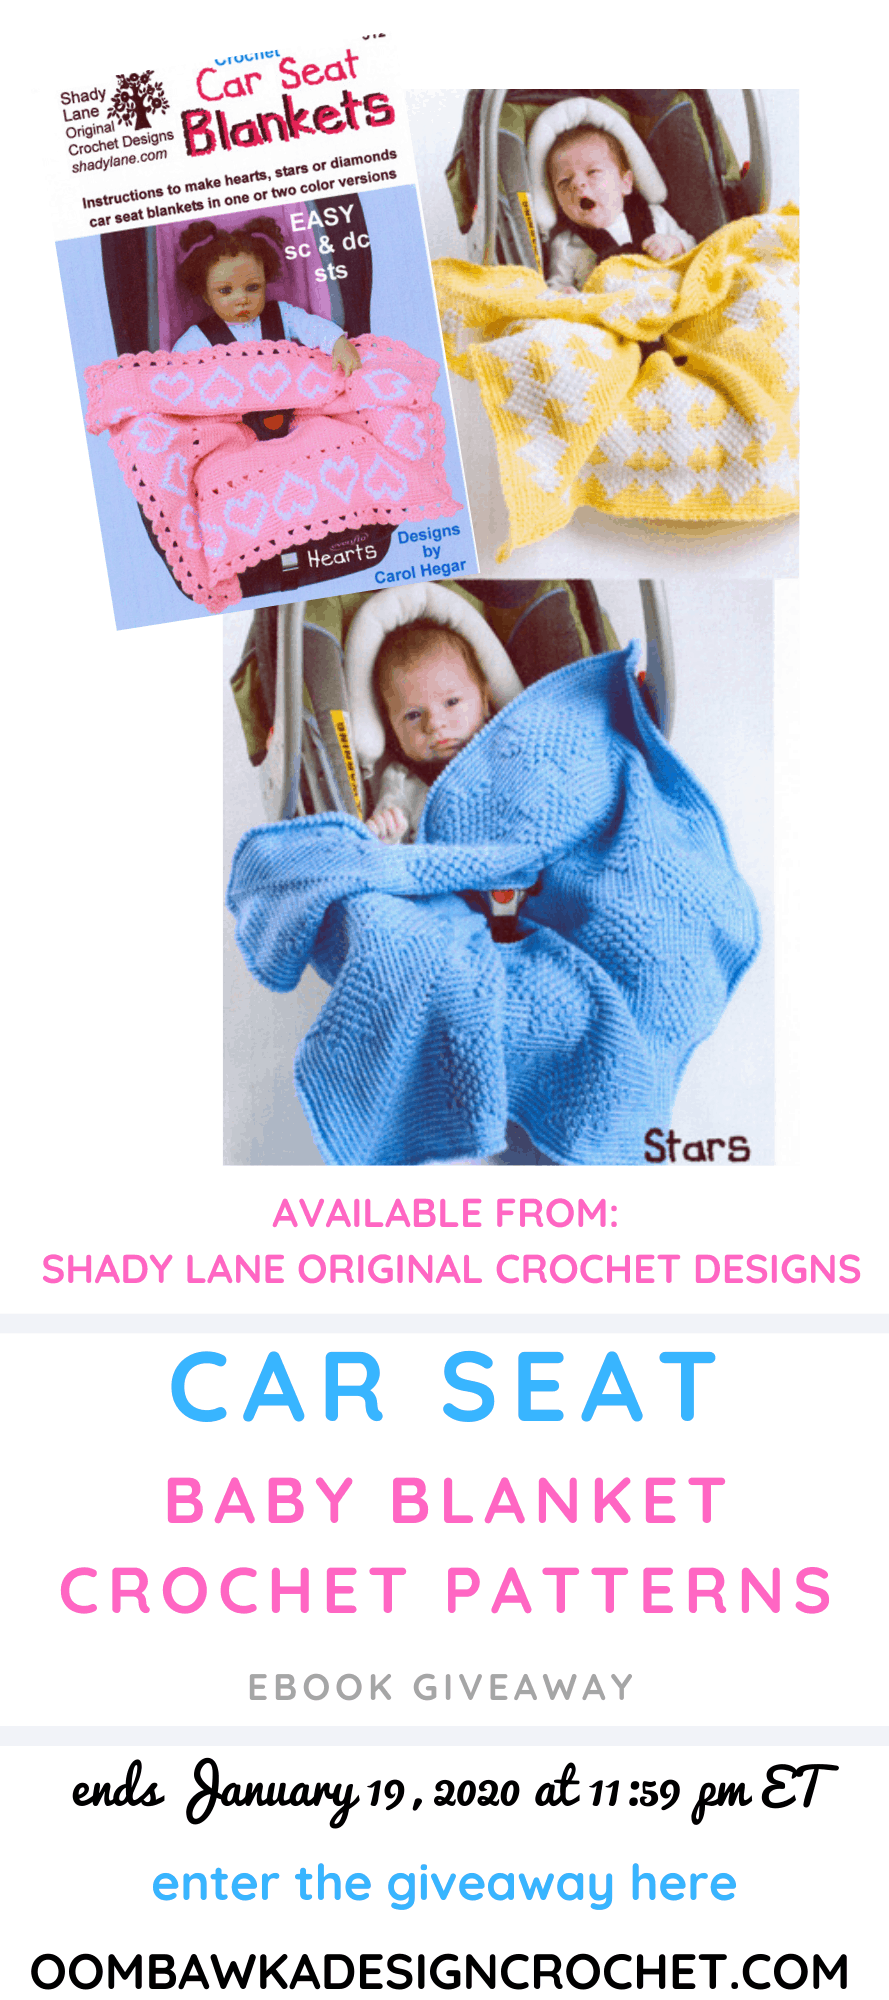 Car Seat Blanket Patterns! The blanket attaches around the buckle of the car seat; so the car seat is secure and the blanket will not fall off baby and onto the floor of the vehicle.